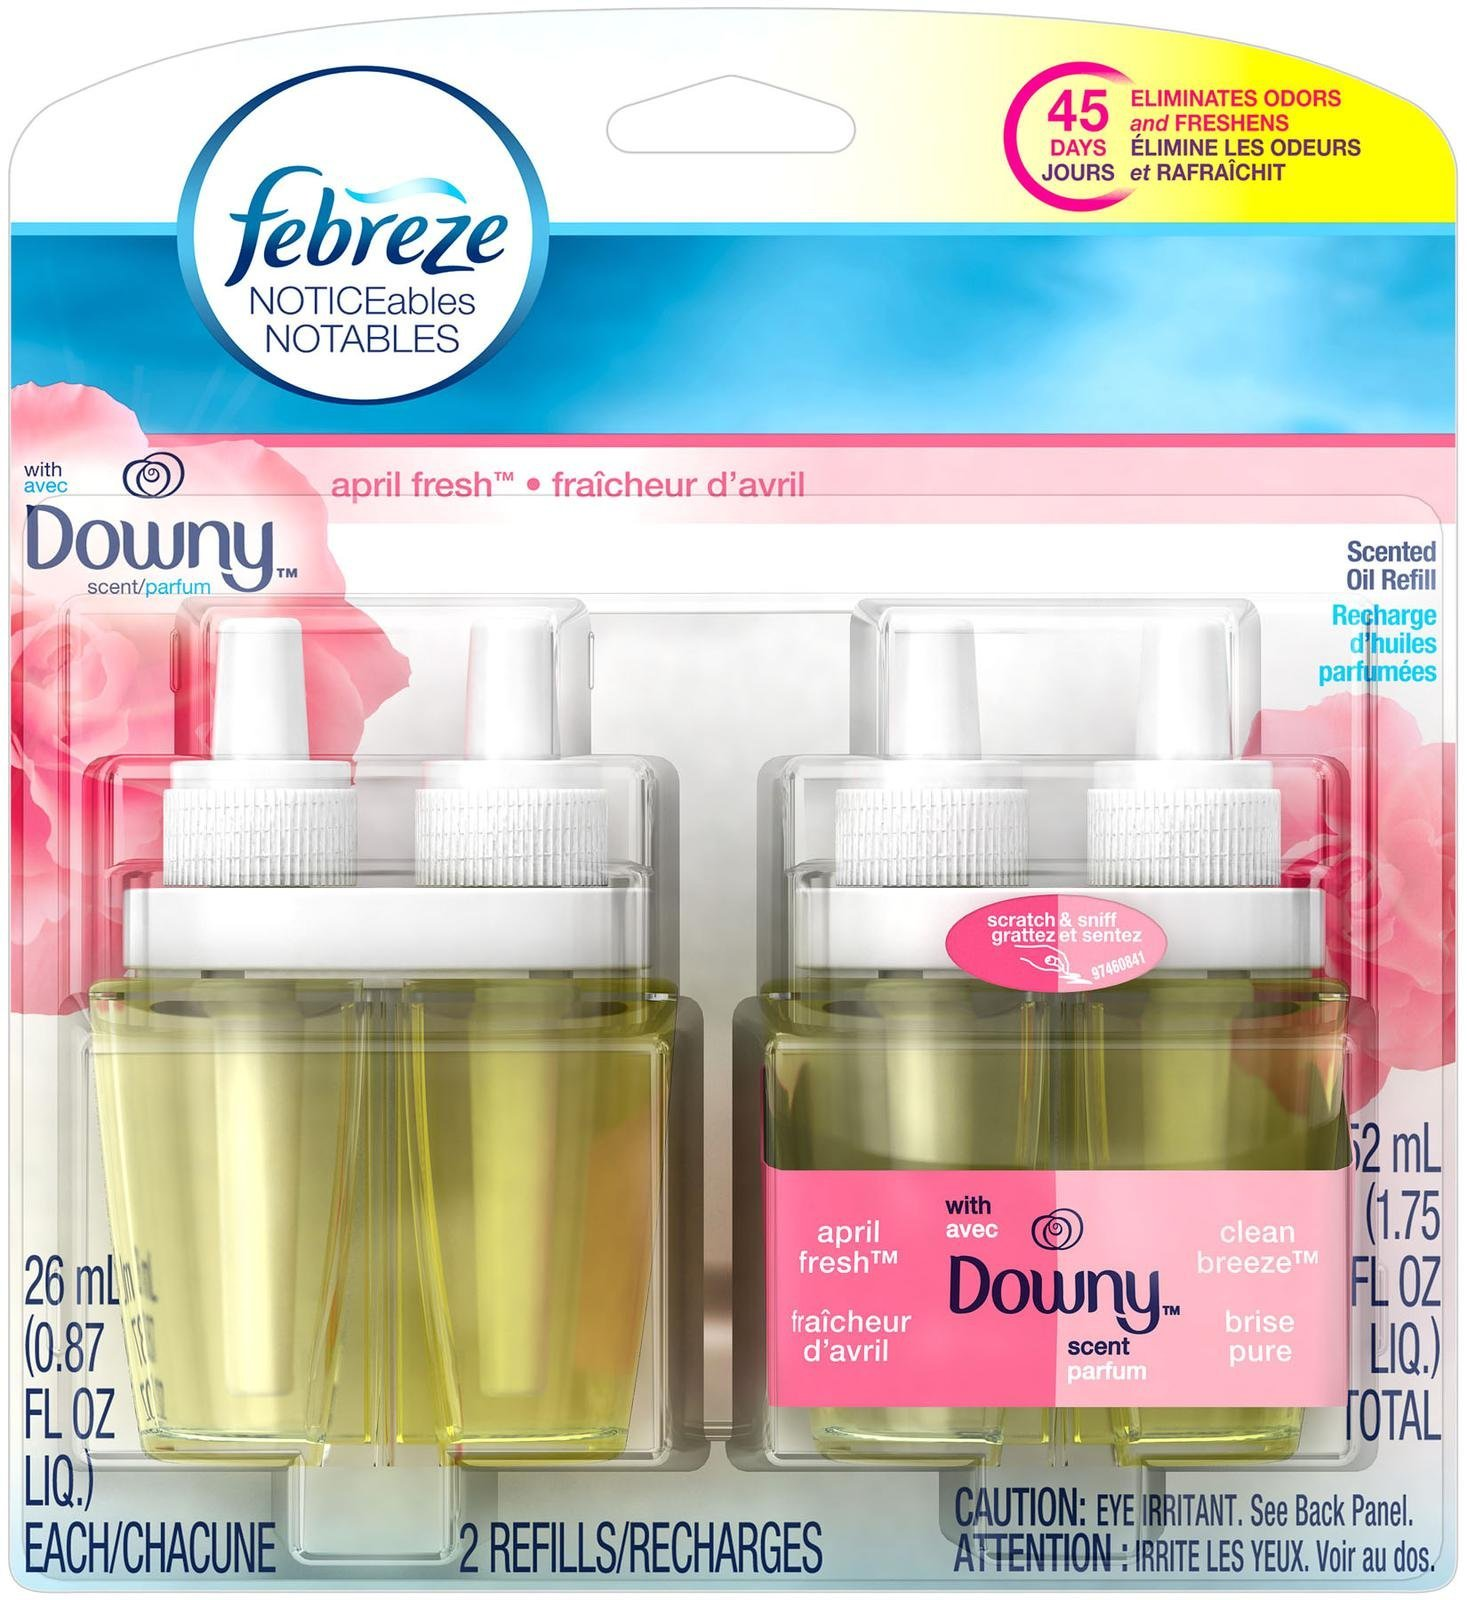 Febreze Noticeable With Downy April Fresh Scent Dual Oil Refill Air Freshener (2 Count, 1.75 Oz), 0.11 Pound